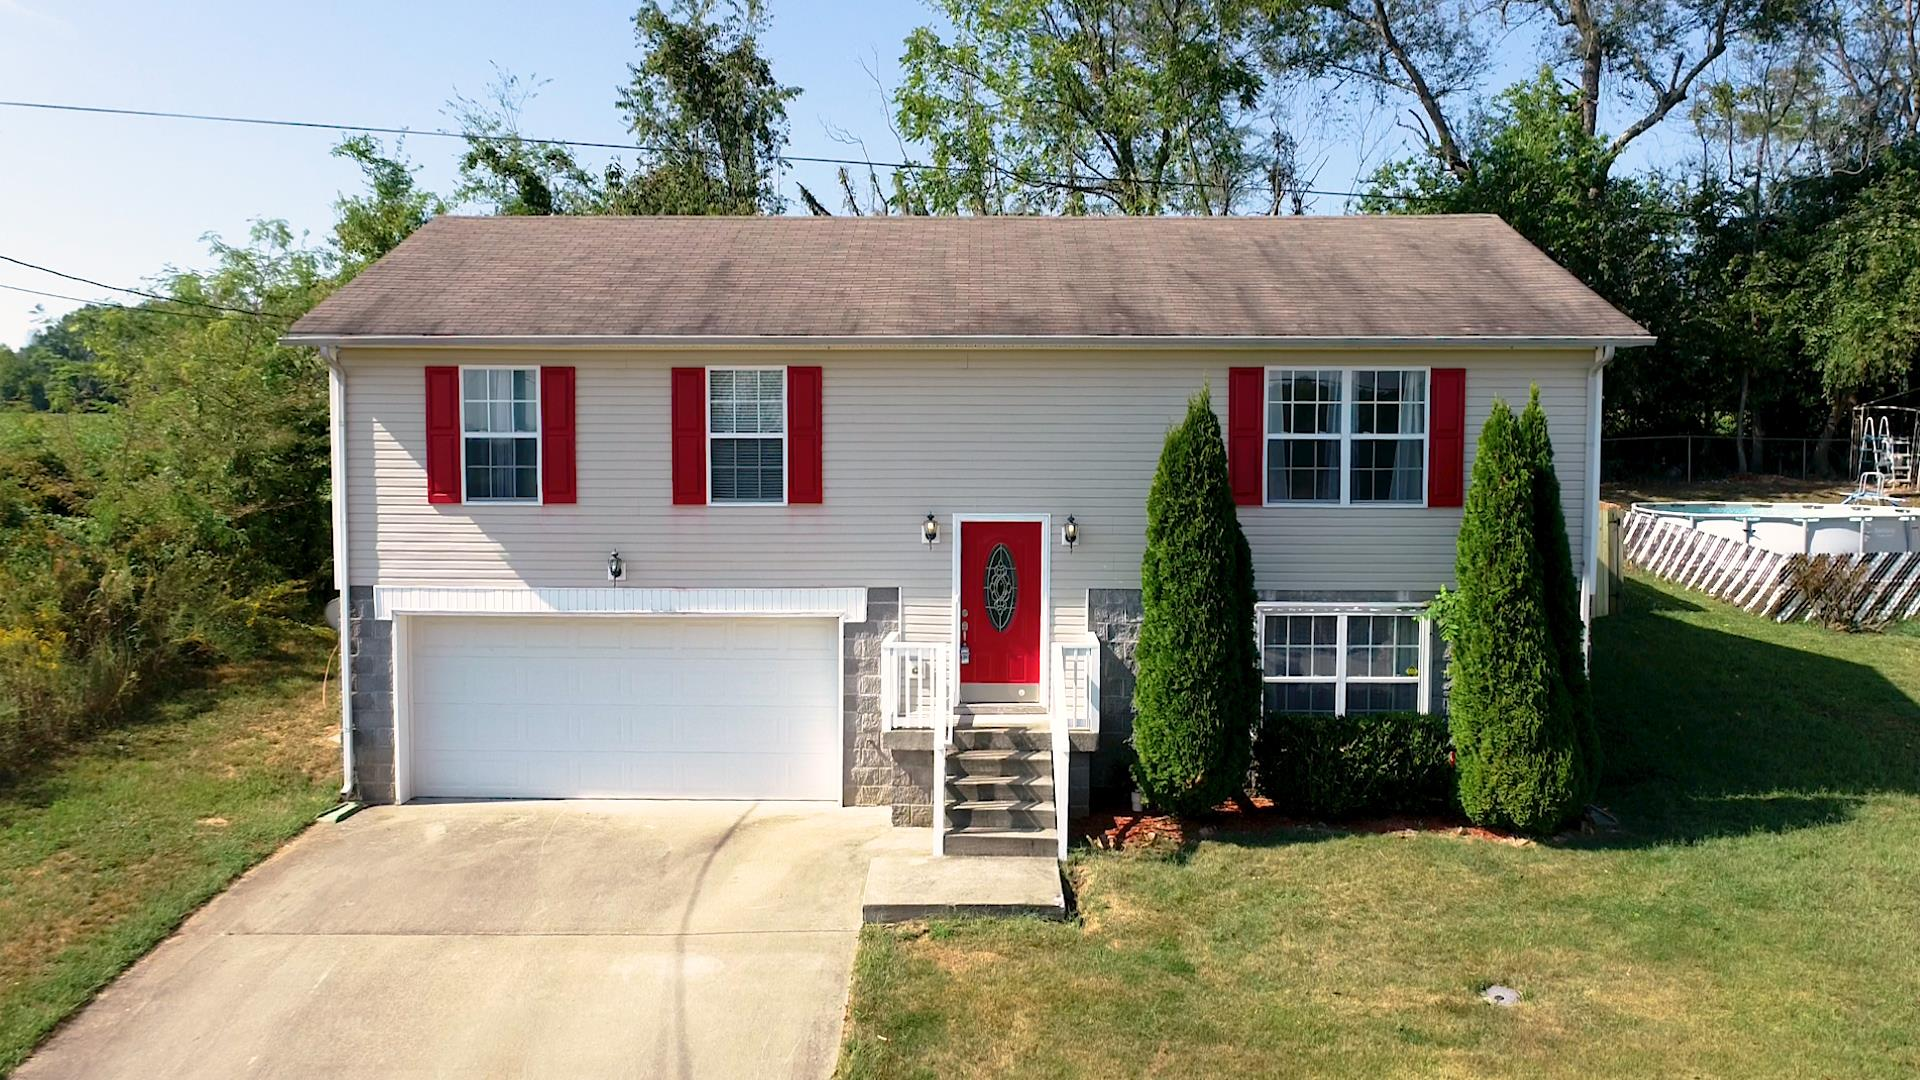 217 Jumpers Pass, Oak Grove, KY 42262 - Oak Grove, KY real estate listing